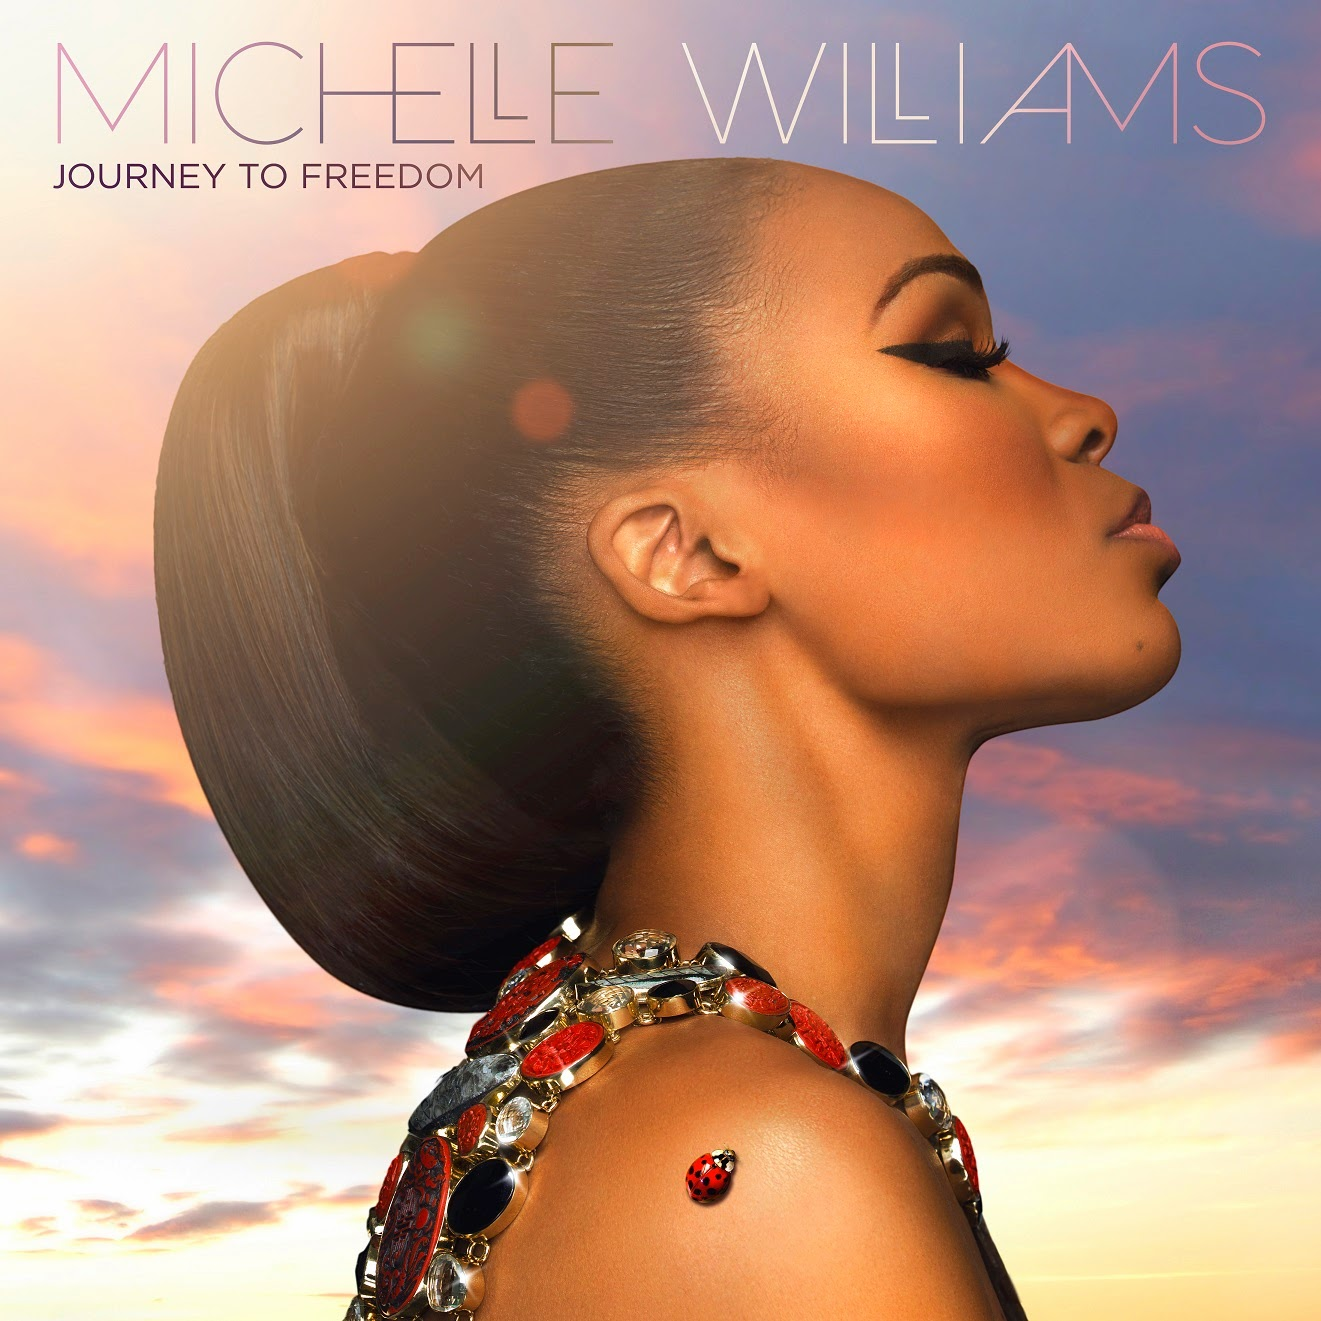 Michelle Williams, Journey to Freedom album cover